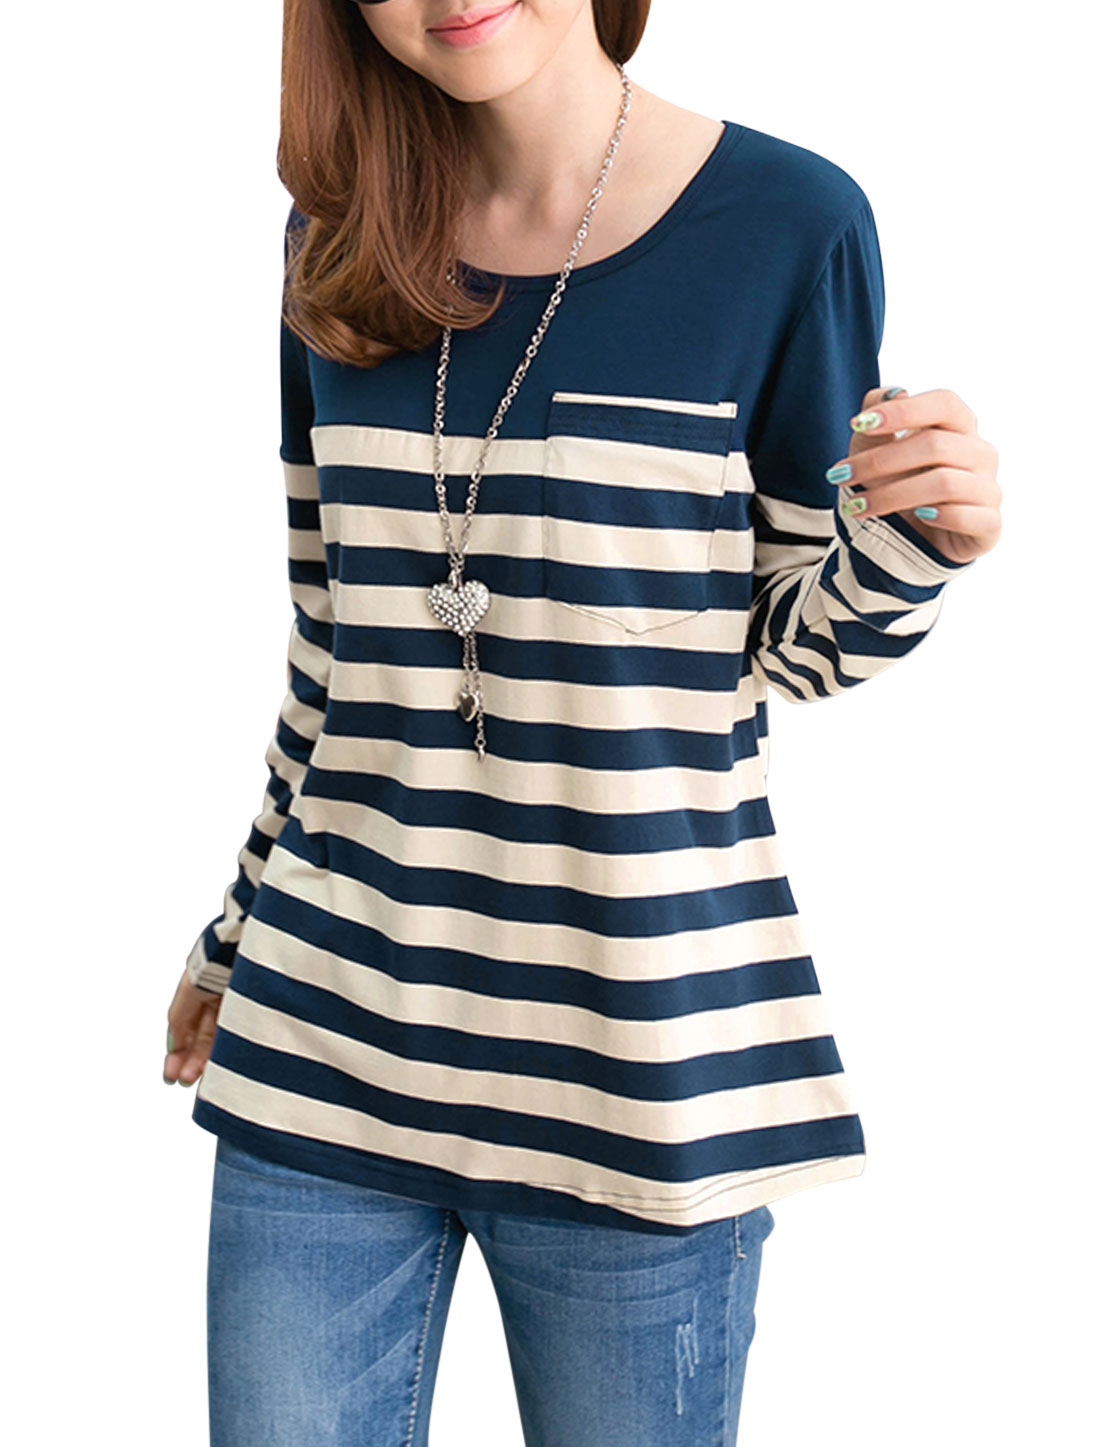 Women Horizontal Stripes Round Neck Slipover T-shirt Navy Blue Beige S